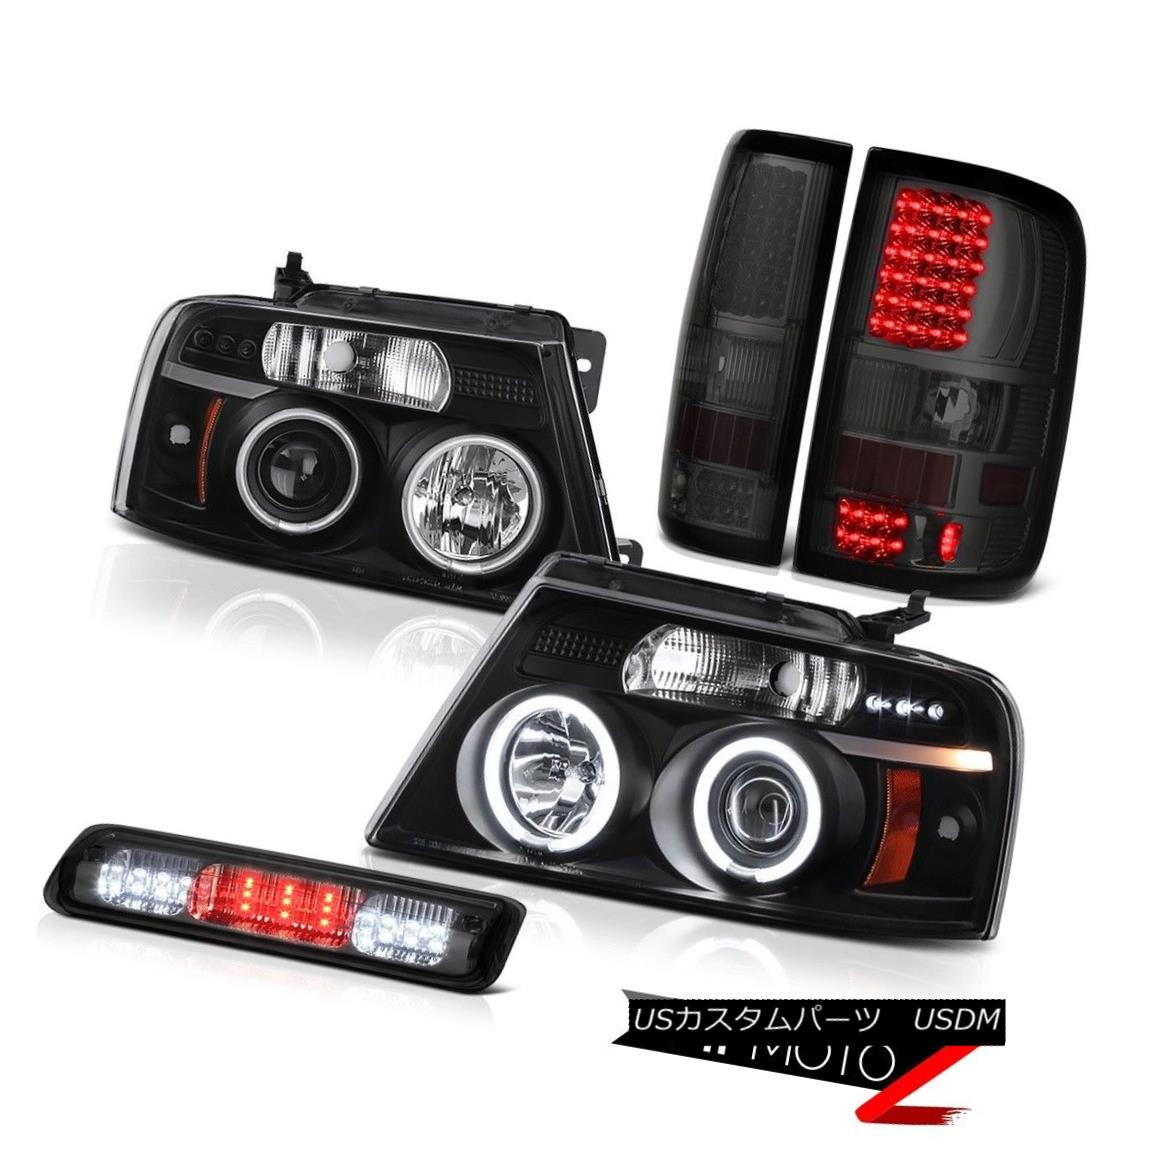 テールライト 2004-2008 Ford F150 Lariat Third Brake Light Rear Lights Headlamps LED CCFL Halo 2004-2008 Ford F150 Lariat ThirdブレーキライトリアライトヘッドランプLED CCFL Halo